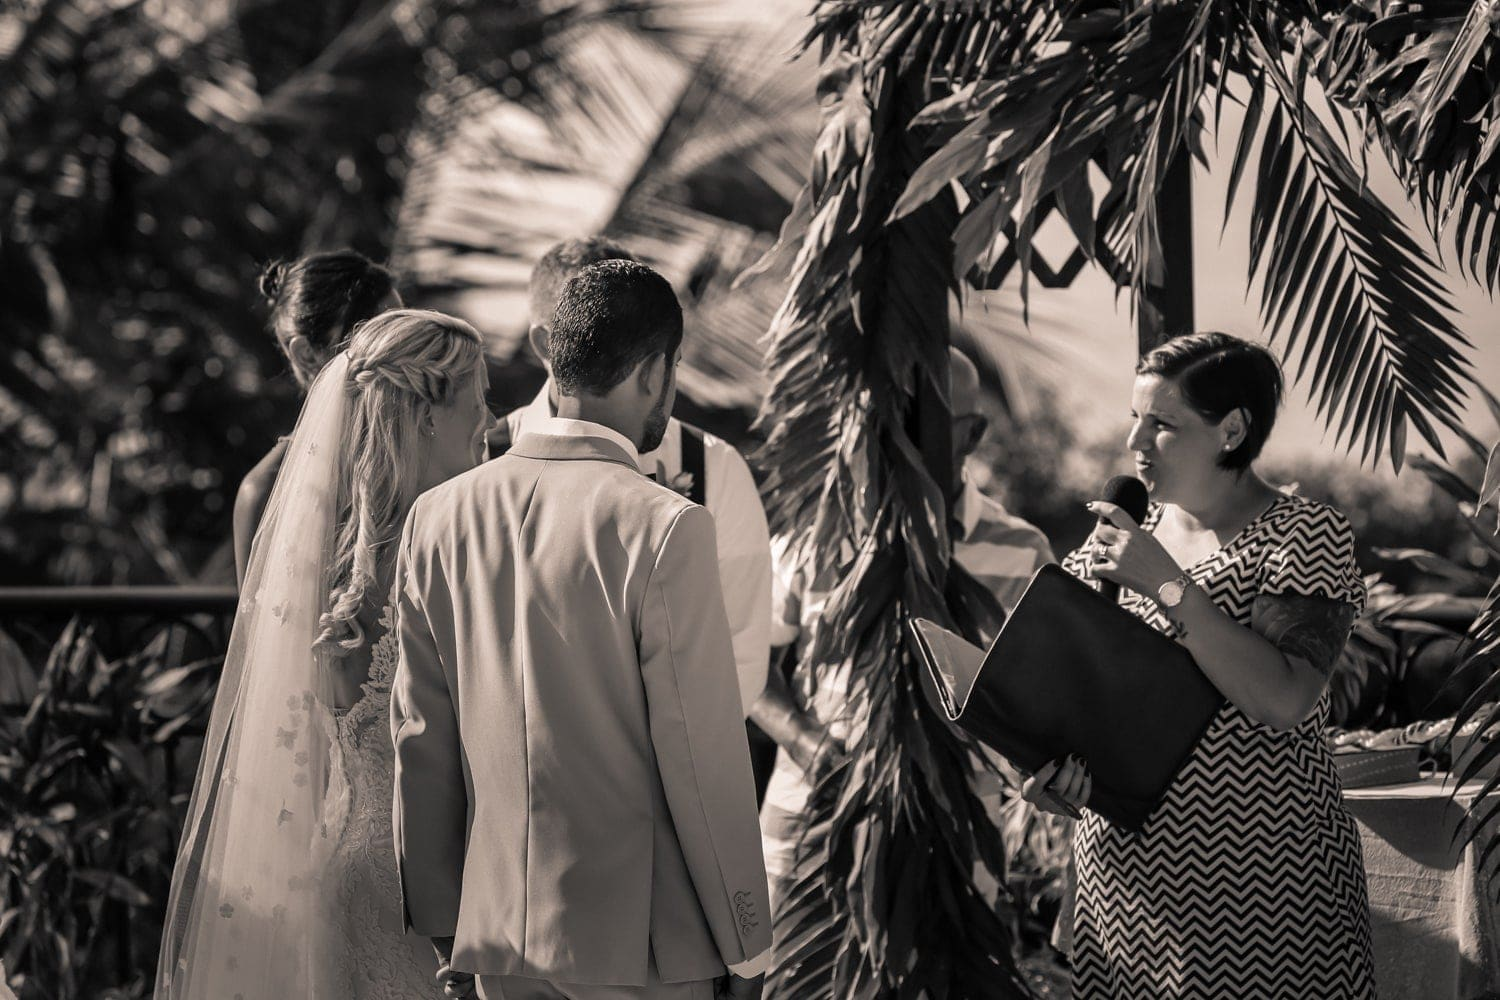 Officiant completes wedding ceremony at Villa Avalon in Puntarenas.